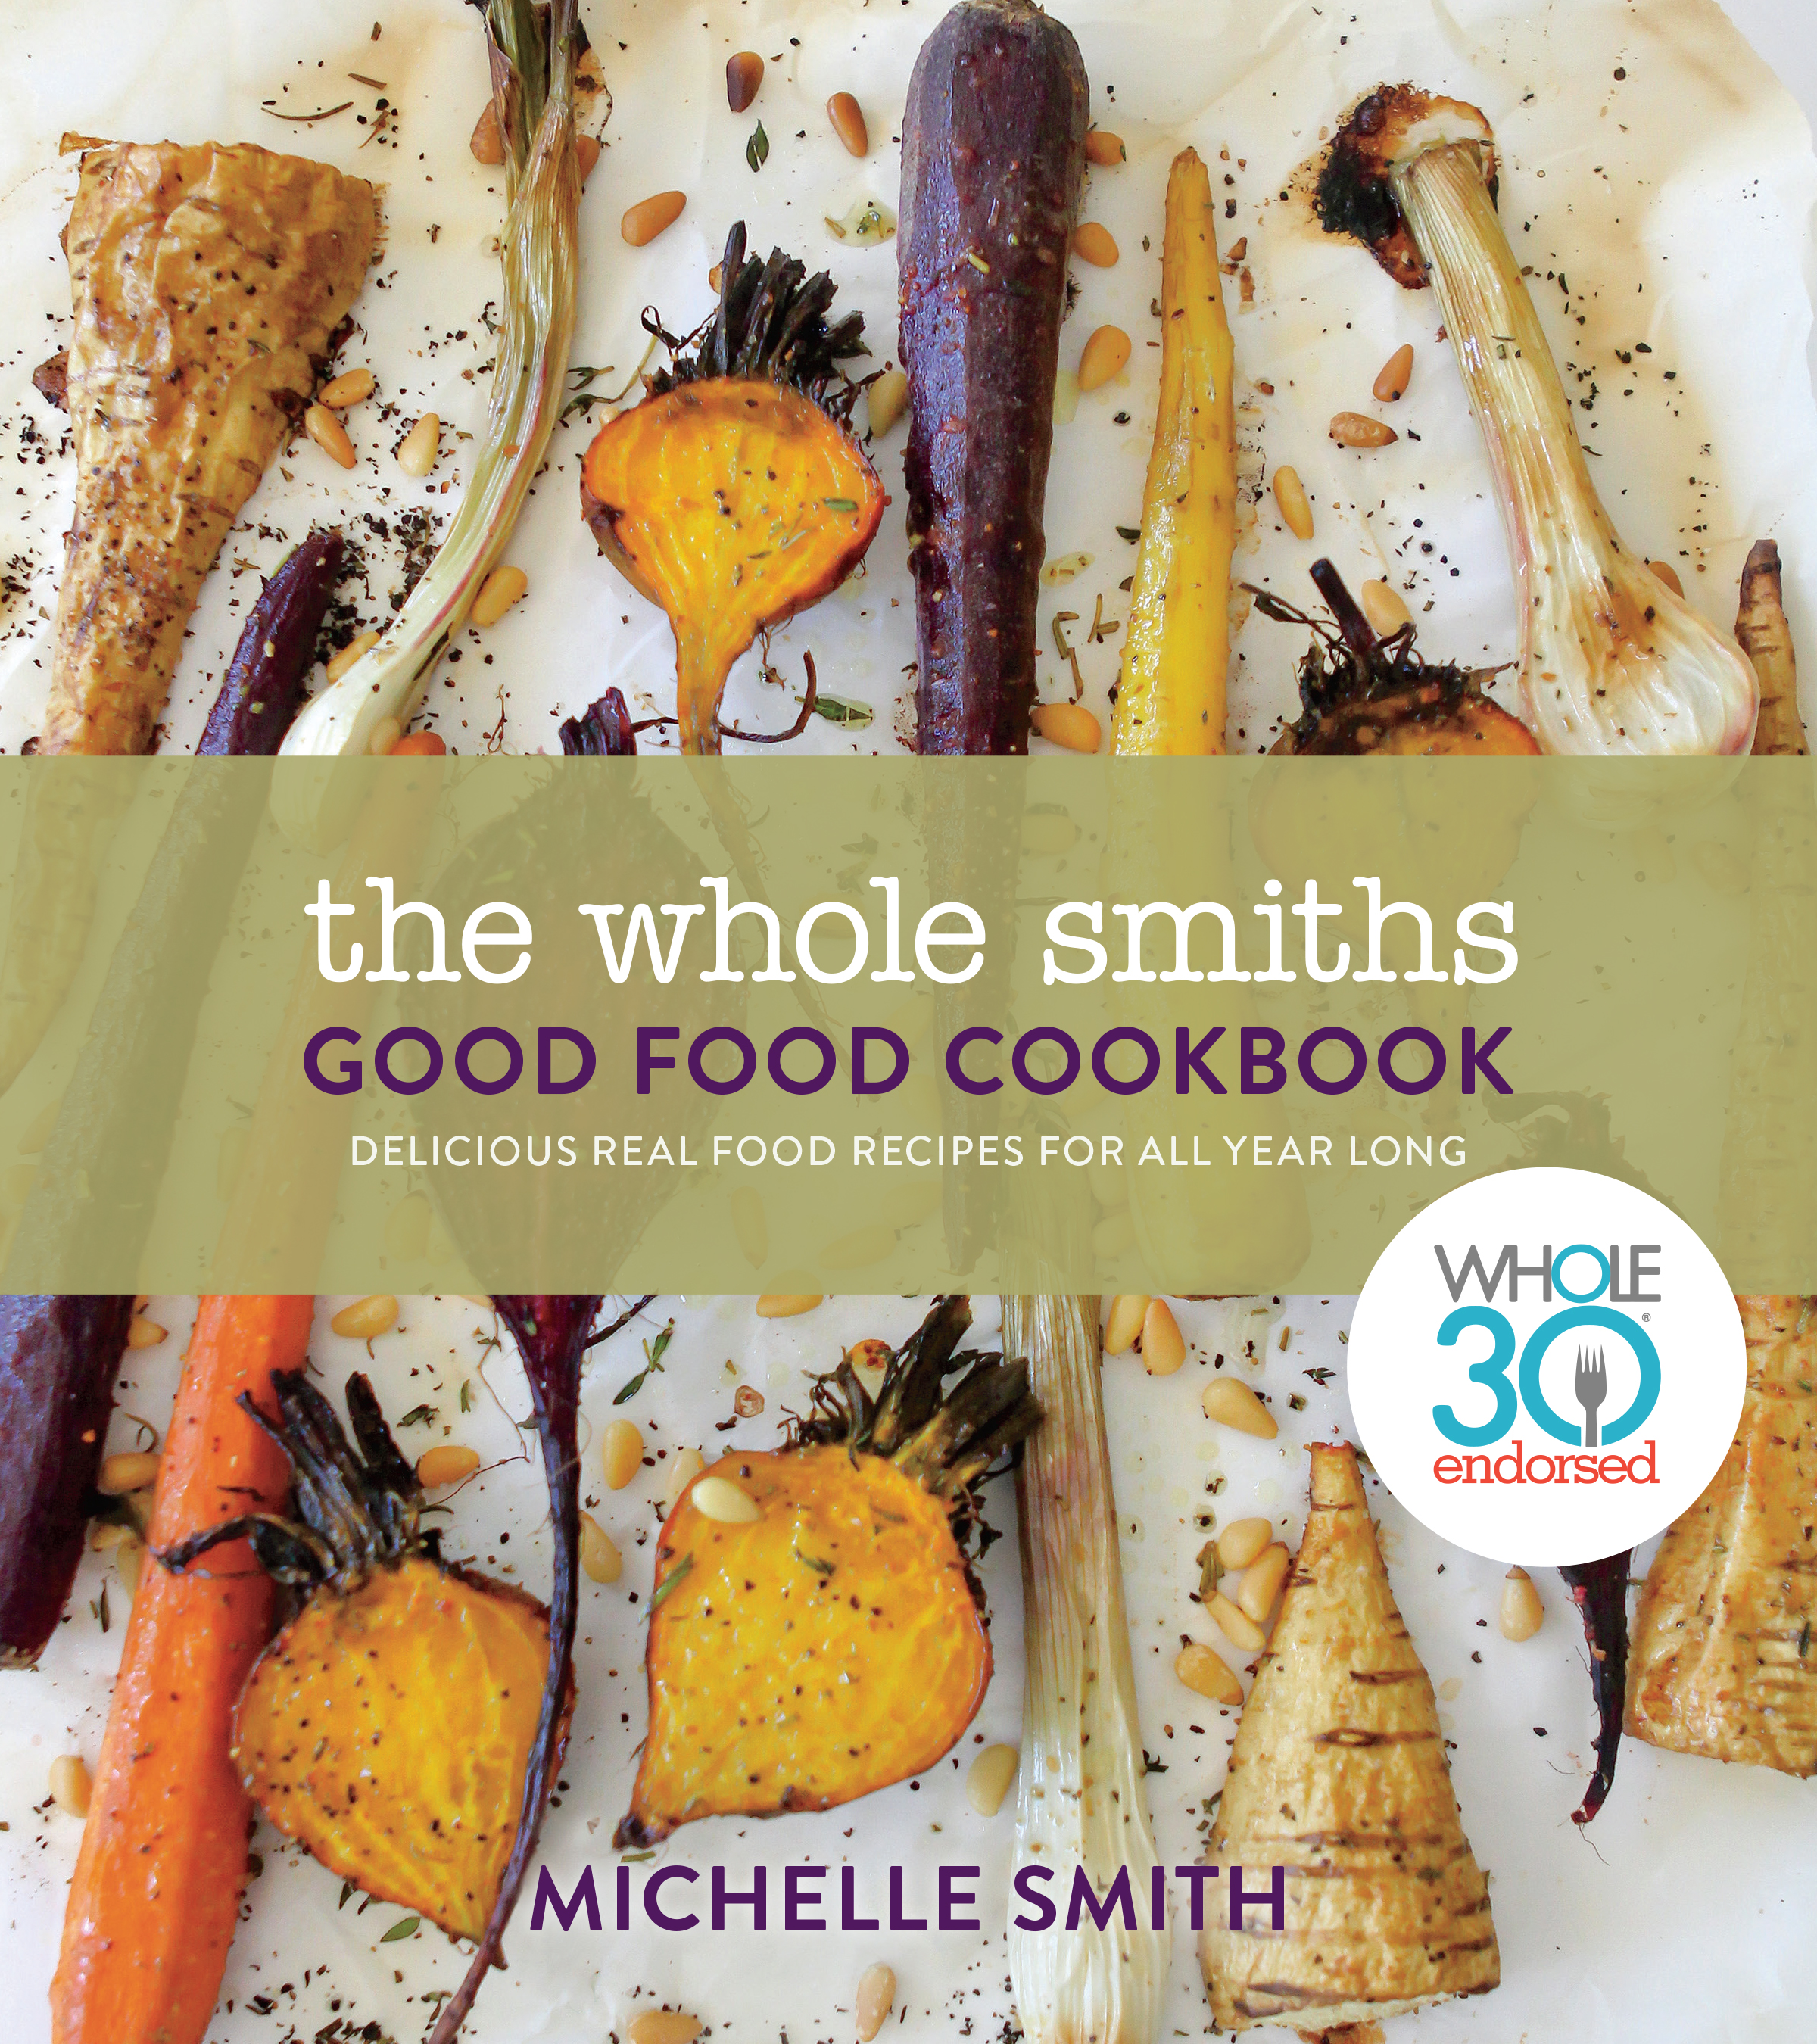 The Whole Smiths Good Food Cookbook is in stores June 5th!